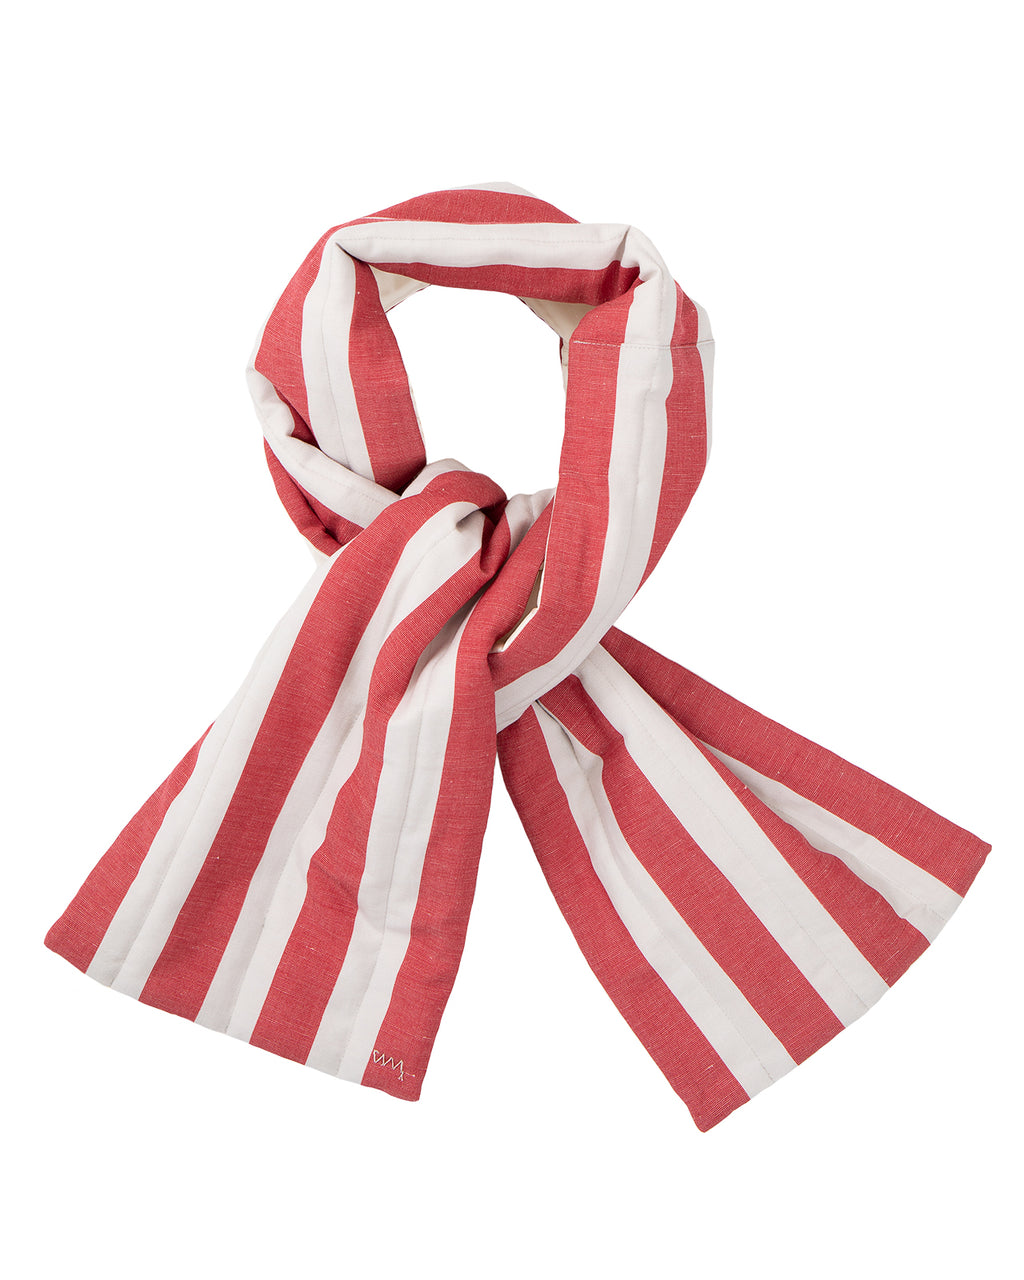 Visvim Stripes Muffler, Red